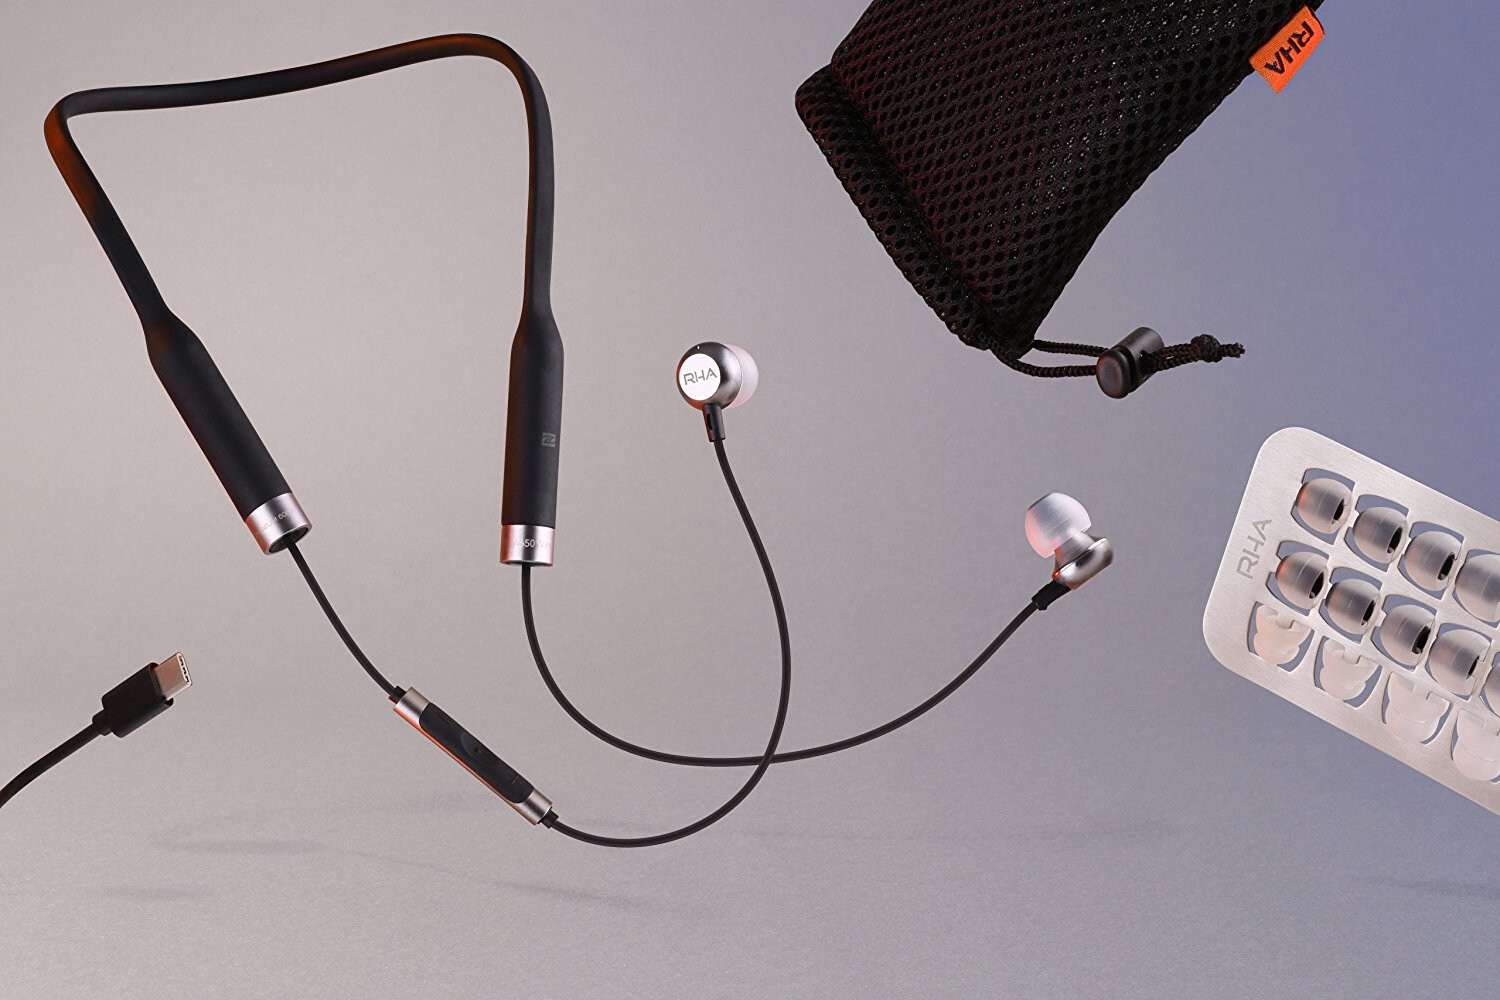 Best wireless Bluetooth earbuds and in-ear headphones to buy